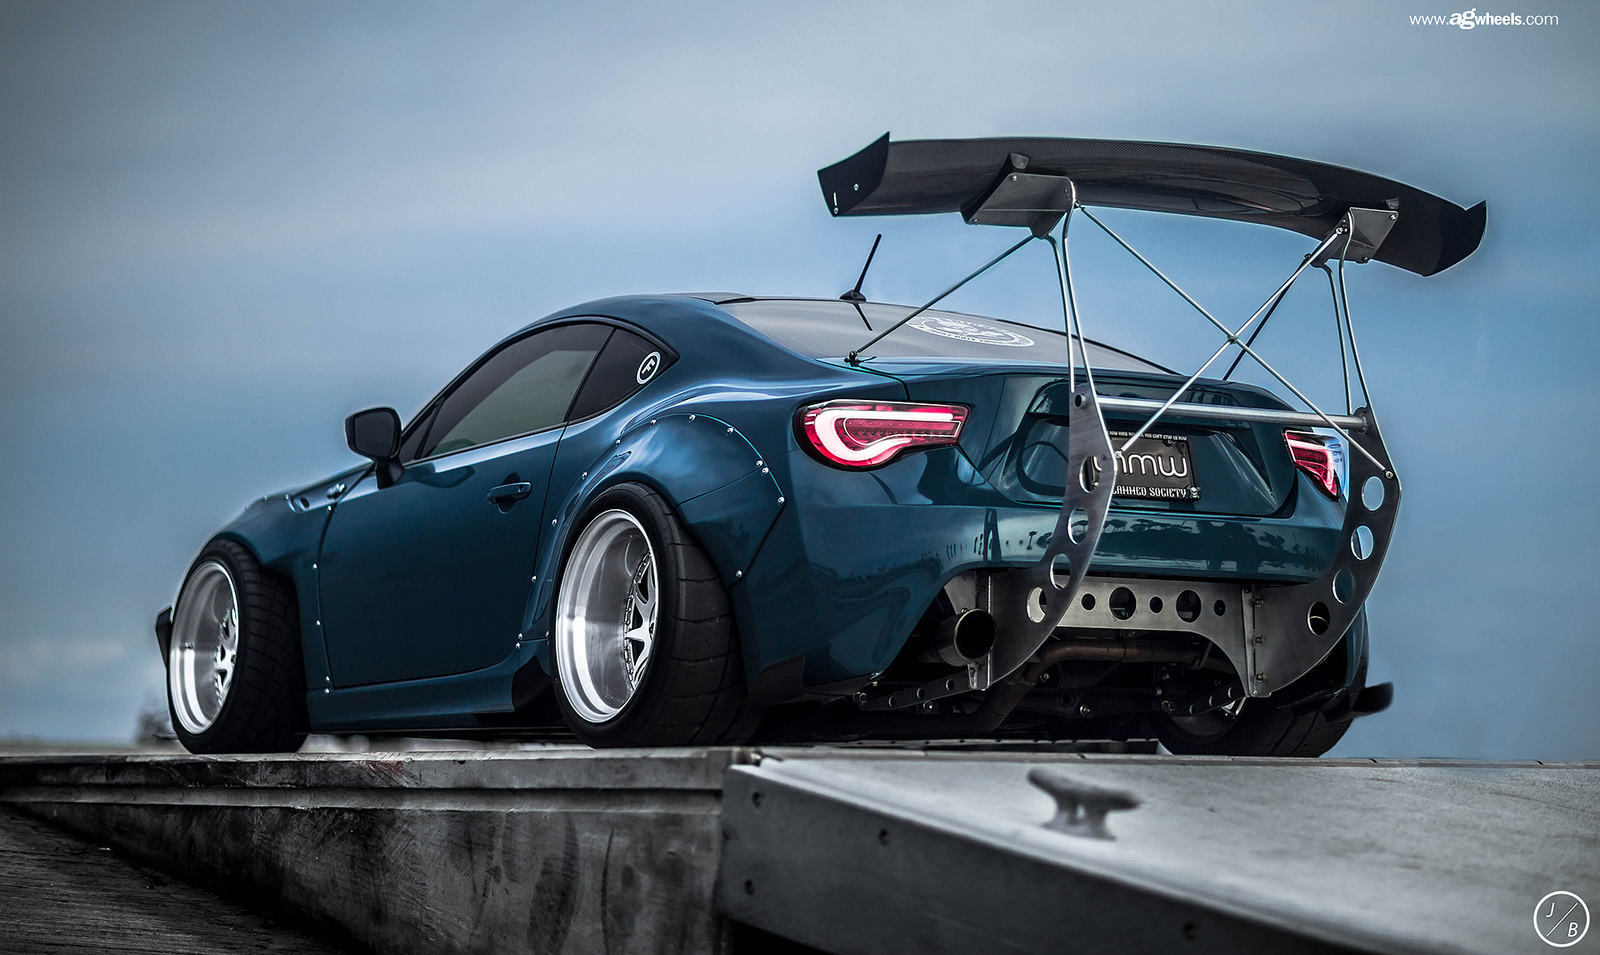 Killagram S Rocket Bunny Scion Fr S Mppsociety